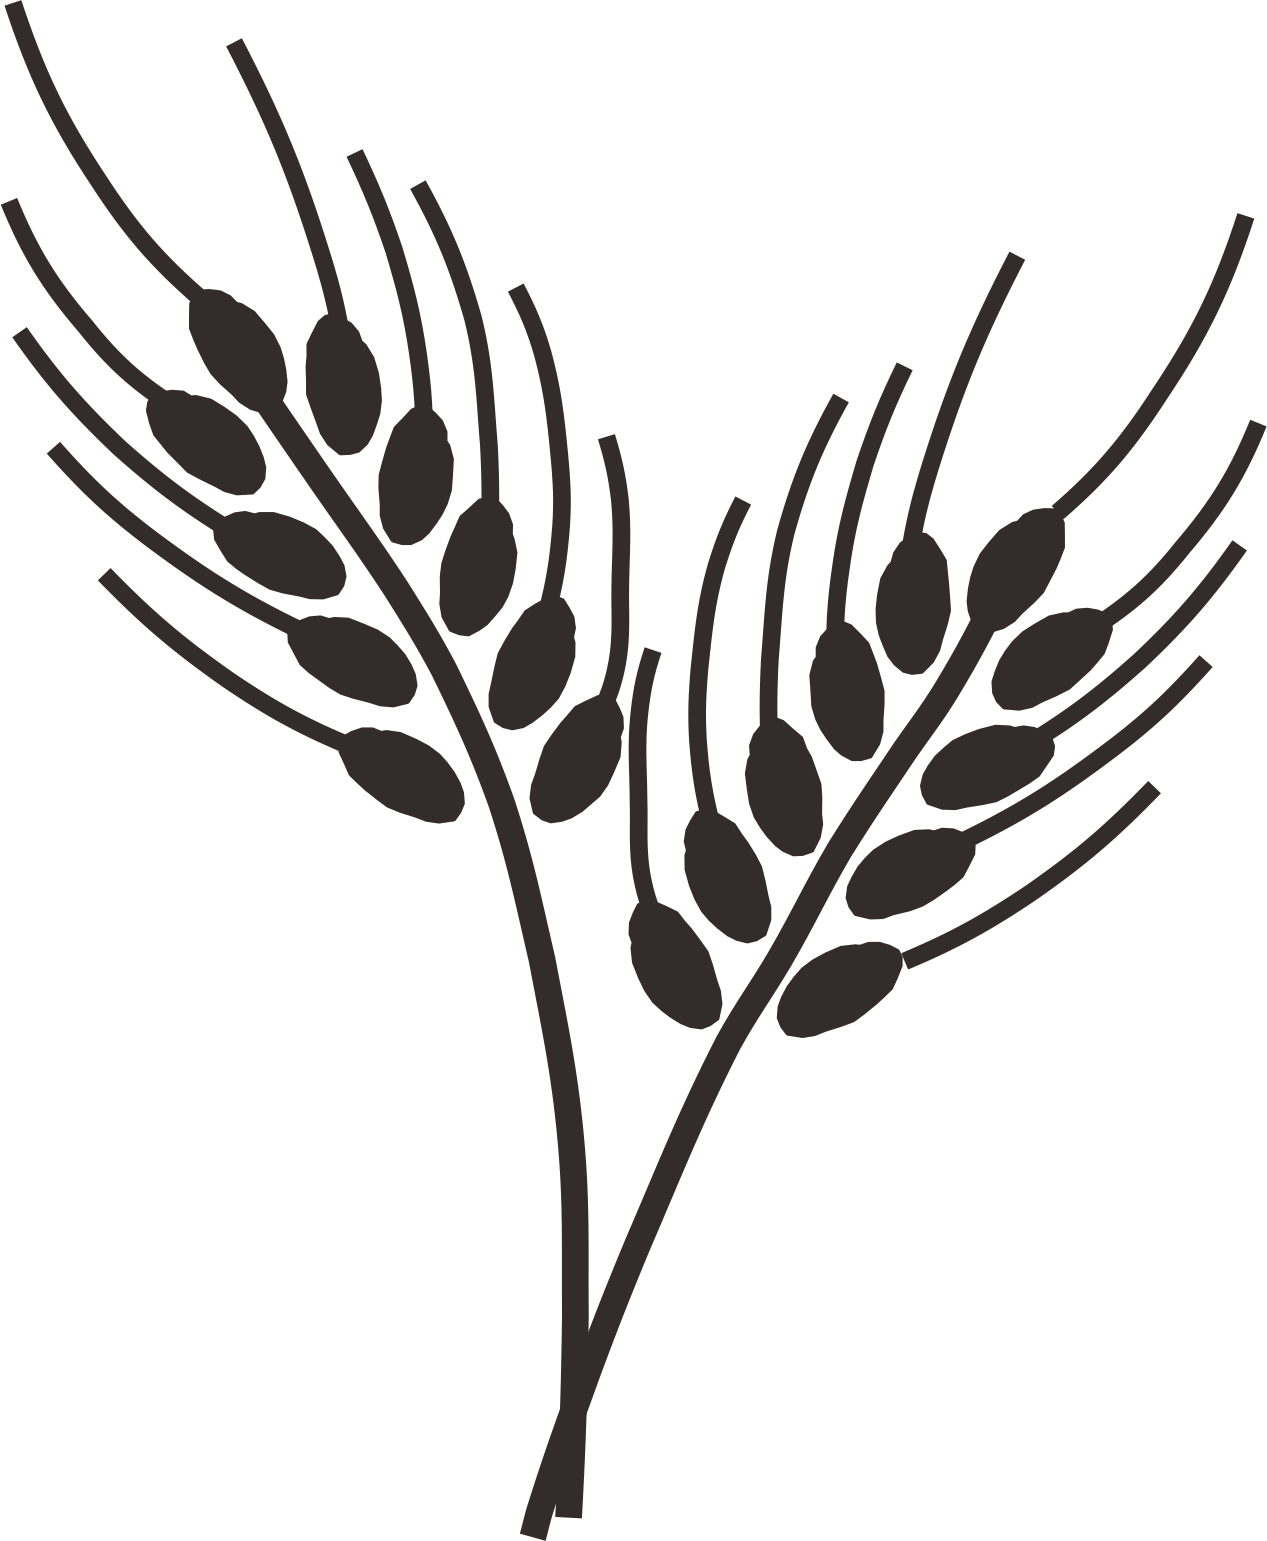 Wheat clipart branch. Common drawing cereal wheatgrass